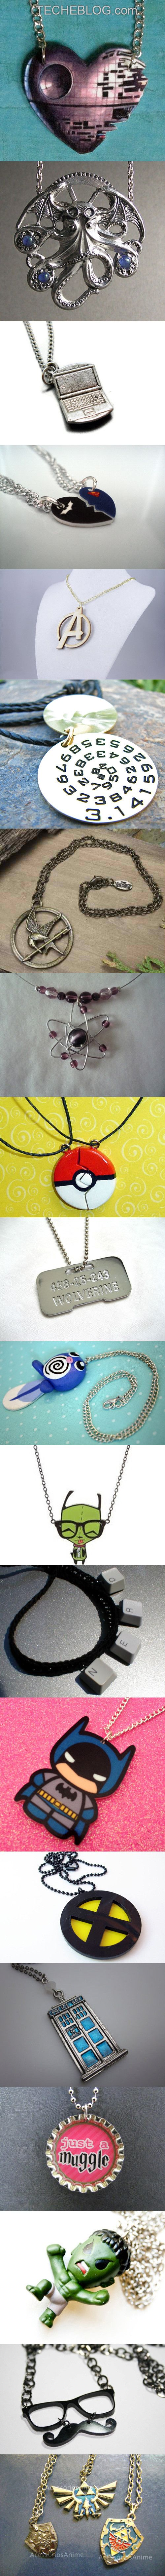 A collection of 20 cool and creative necklaces for geeks.